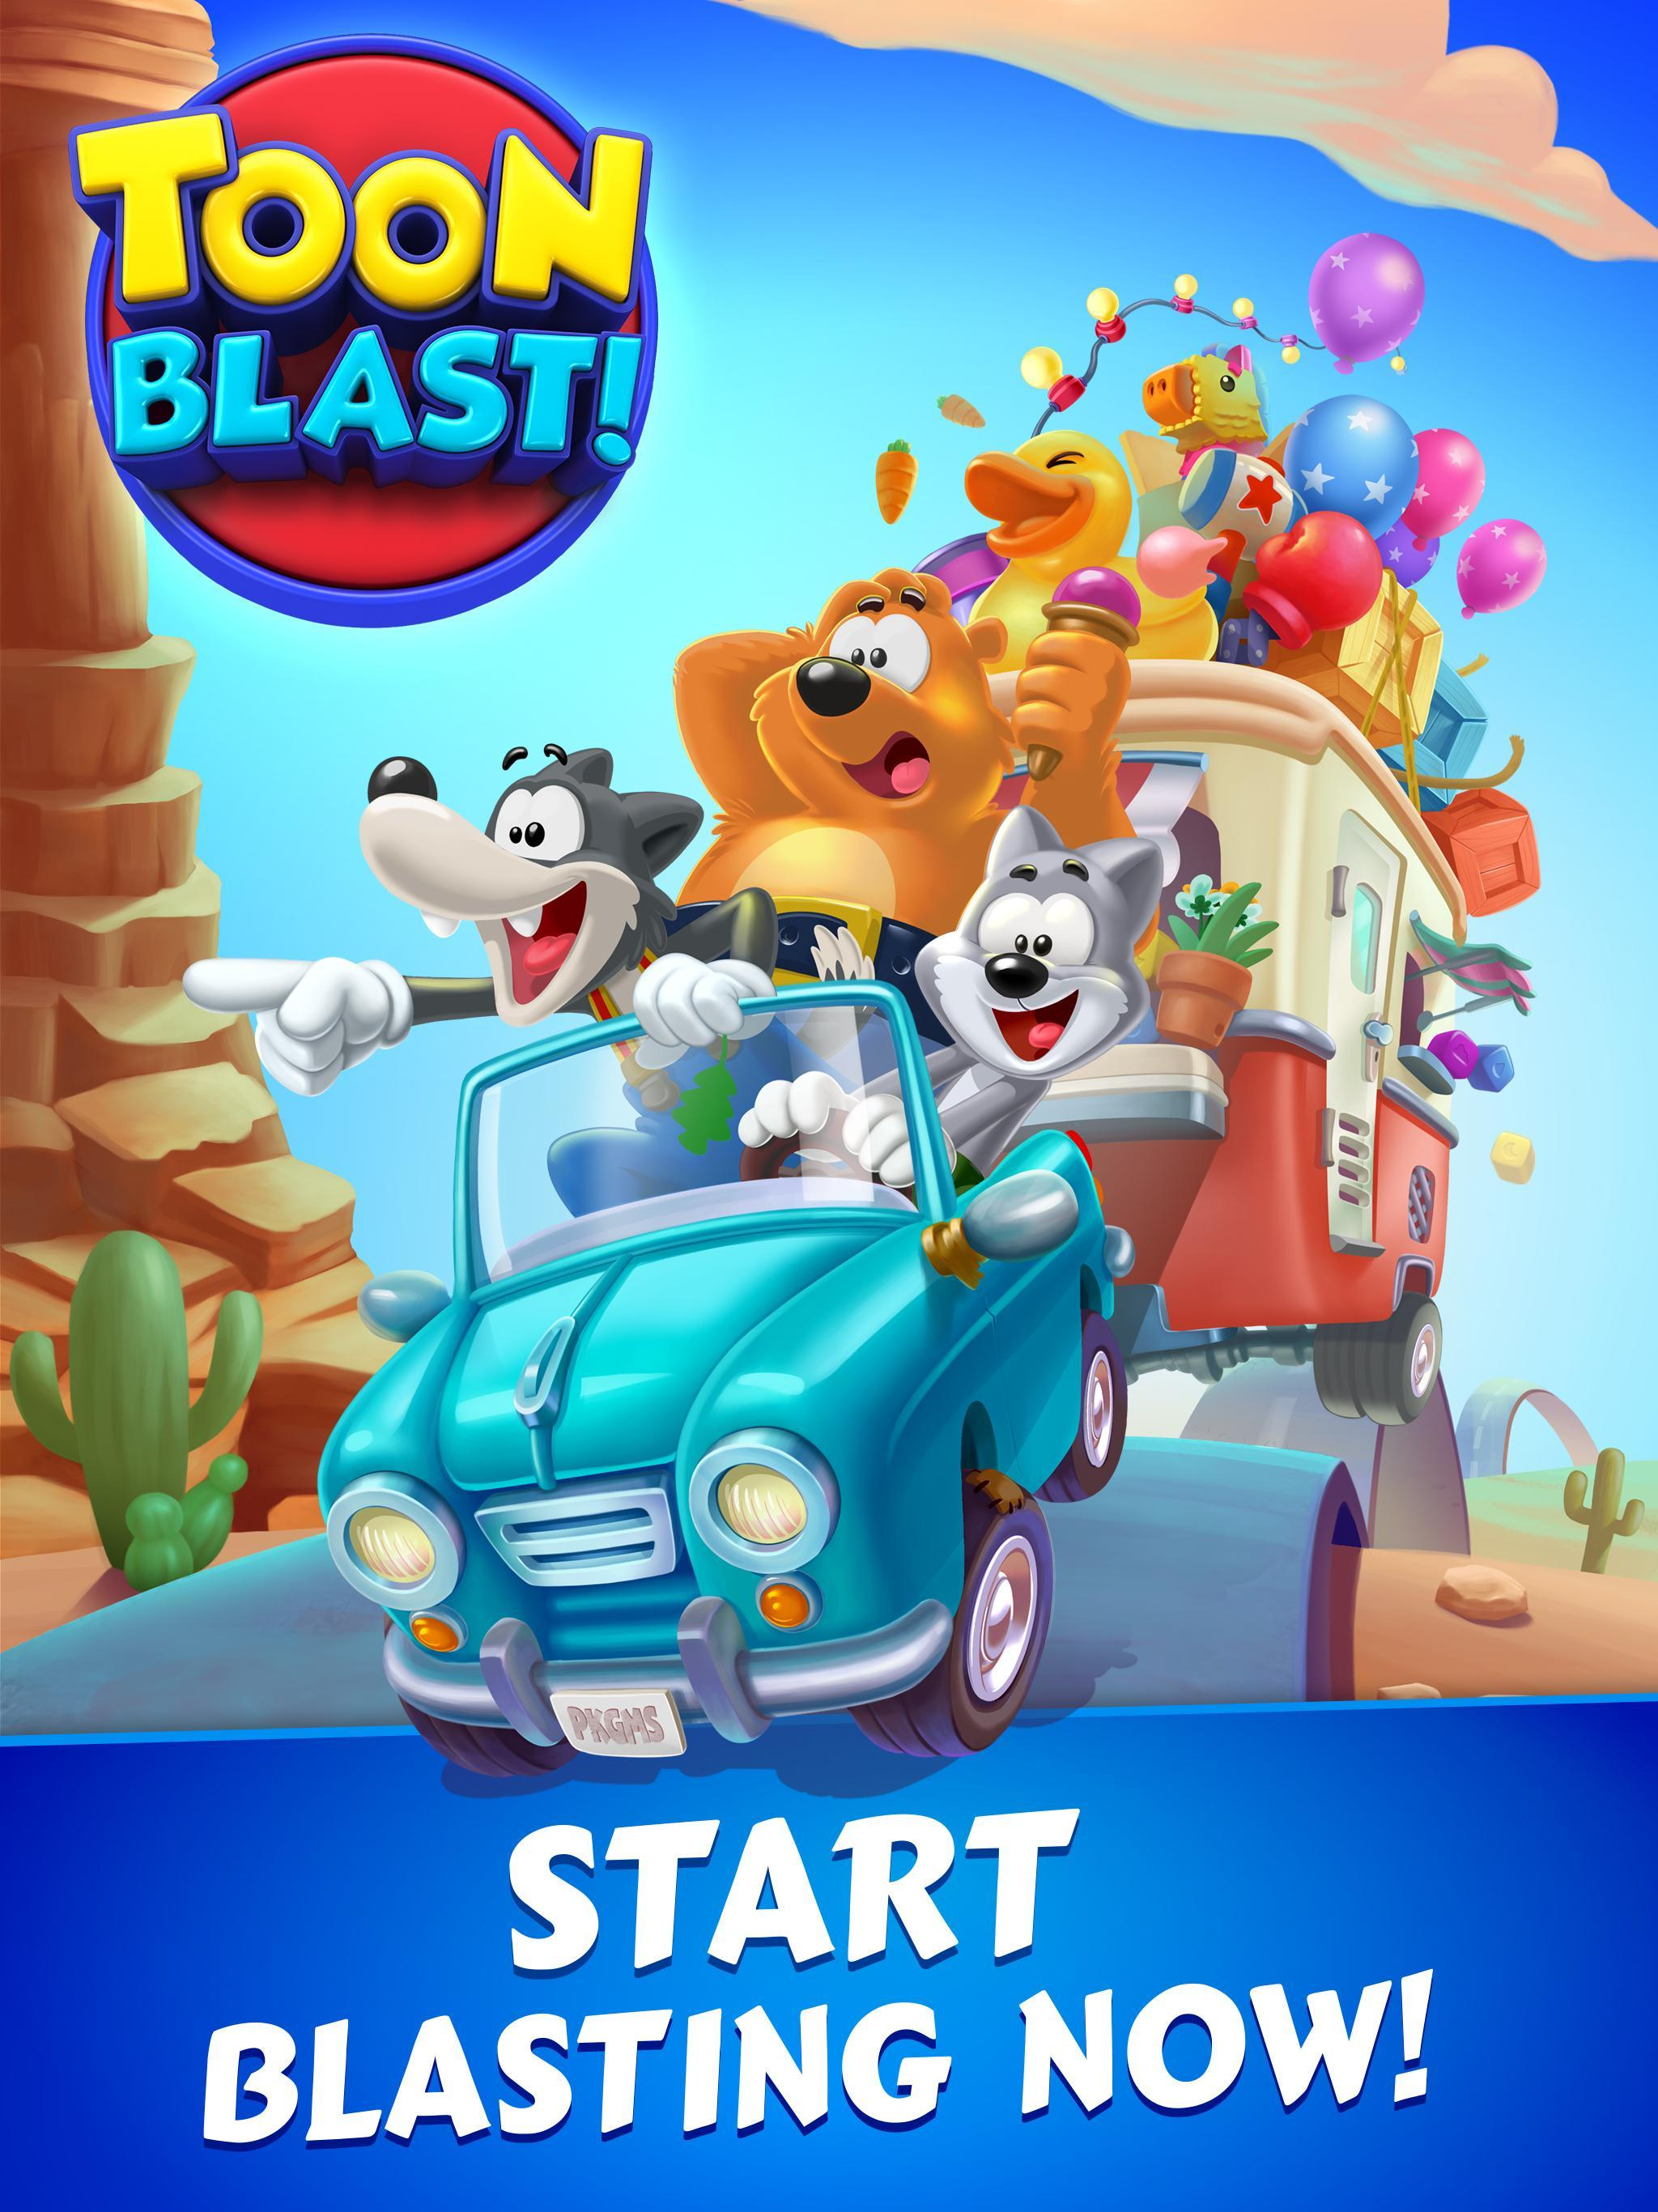 Toon Blast for Android - APK Download